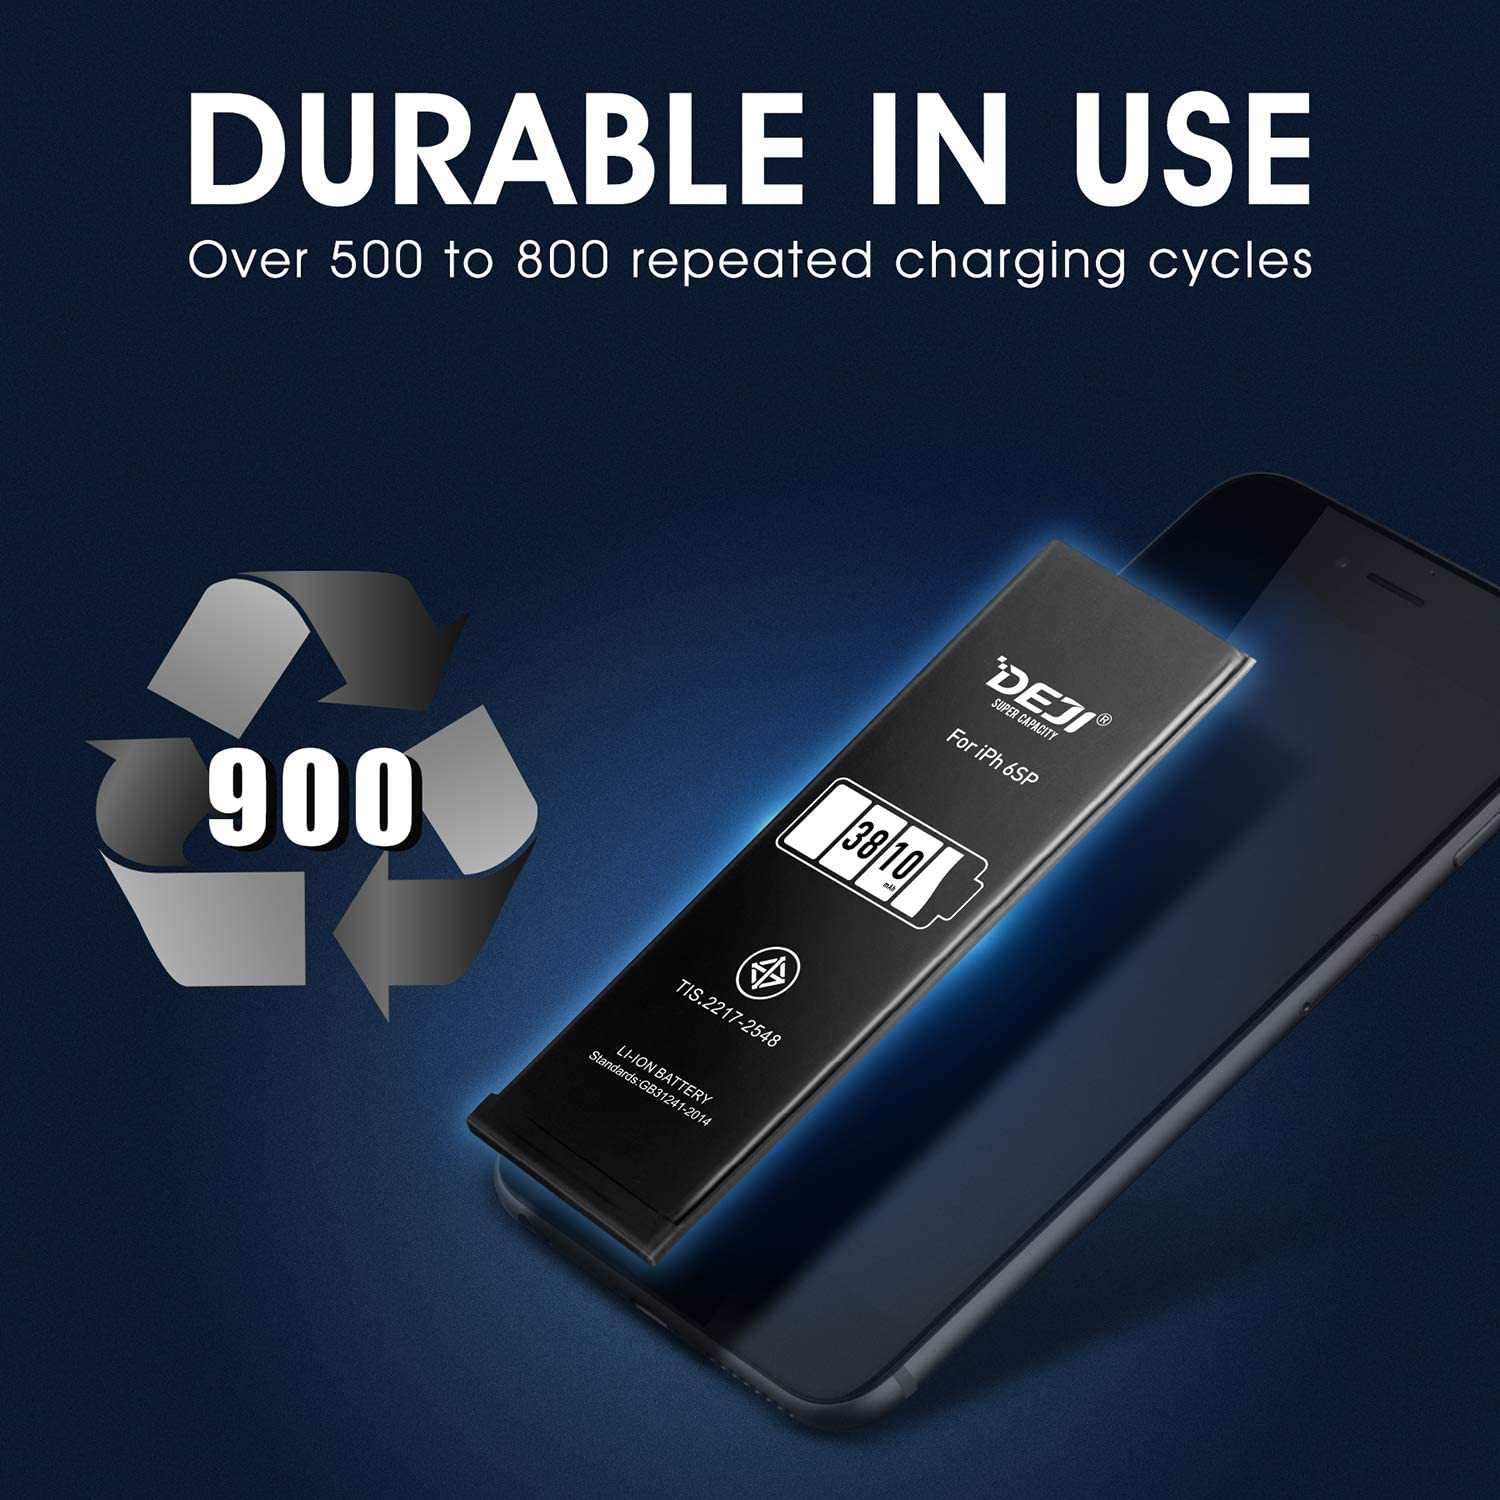 DEJI 3810mAh Battery for iPhone 6S Plus New Super High Capacity Replacement Battery for iPhone 6S Plus with Complete Repair Tools Kit Adhesive and Instructions